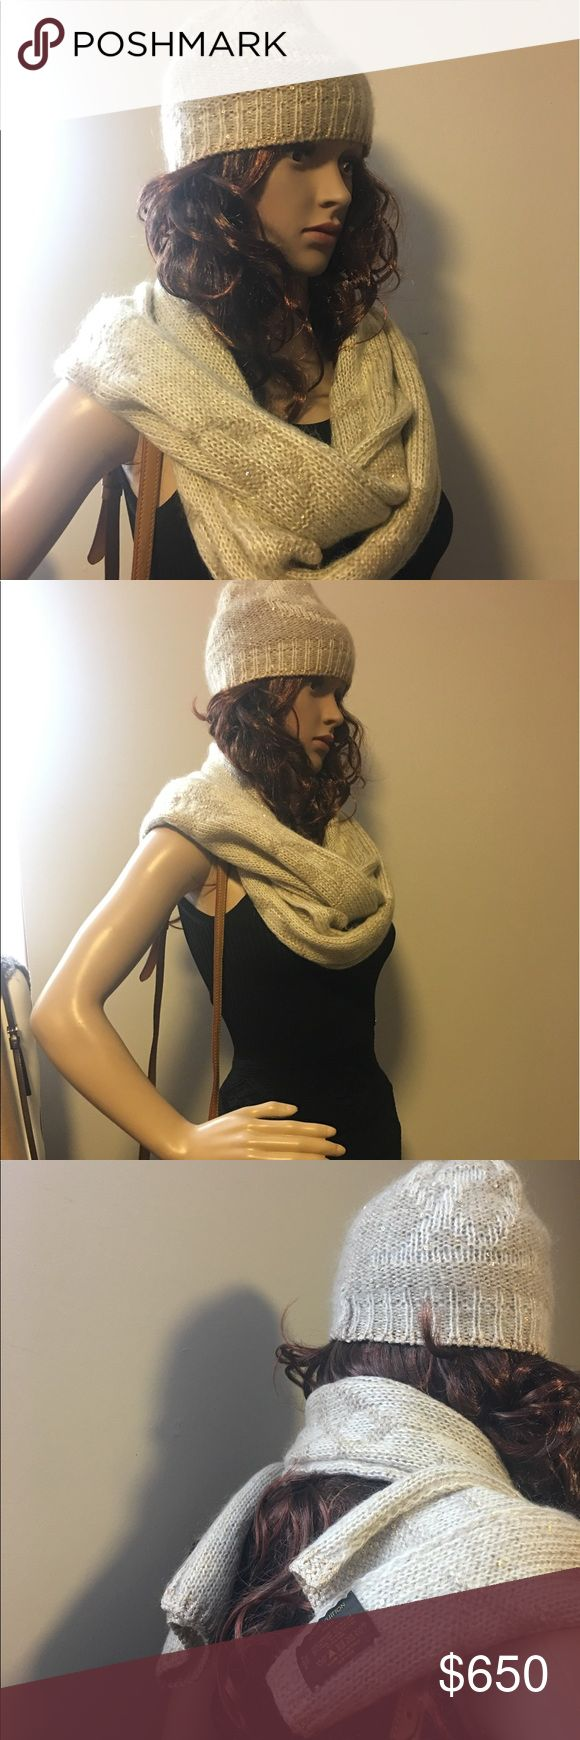 Louis Vuitton monogram scarf and hat - Authentic Louis Vuitton Set Scarf + Hat  - 30cm x 200cm about  - Color beige and gold   - 29% mohair, 23% nylon, 15% cotton, 11% acrylic,  5% wool, 5% polyester, 2% rayon  - Used not new with defect see last photo  - Sell without box  - Sell together scarf & hat Louis Vuitton Accessories Scarves & Wraps